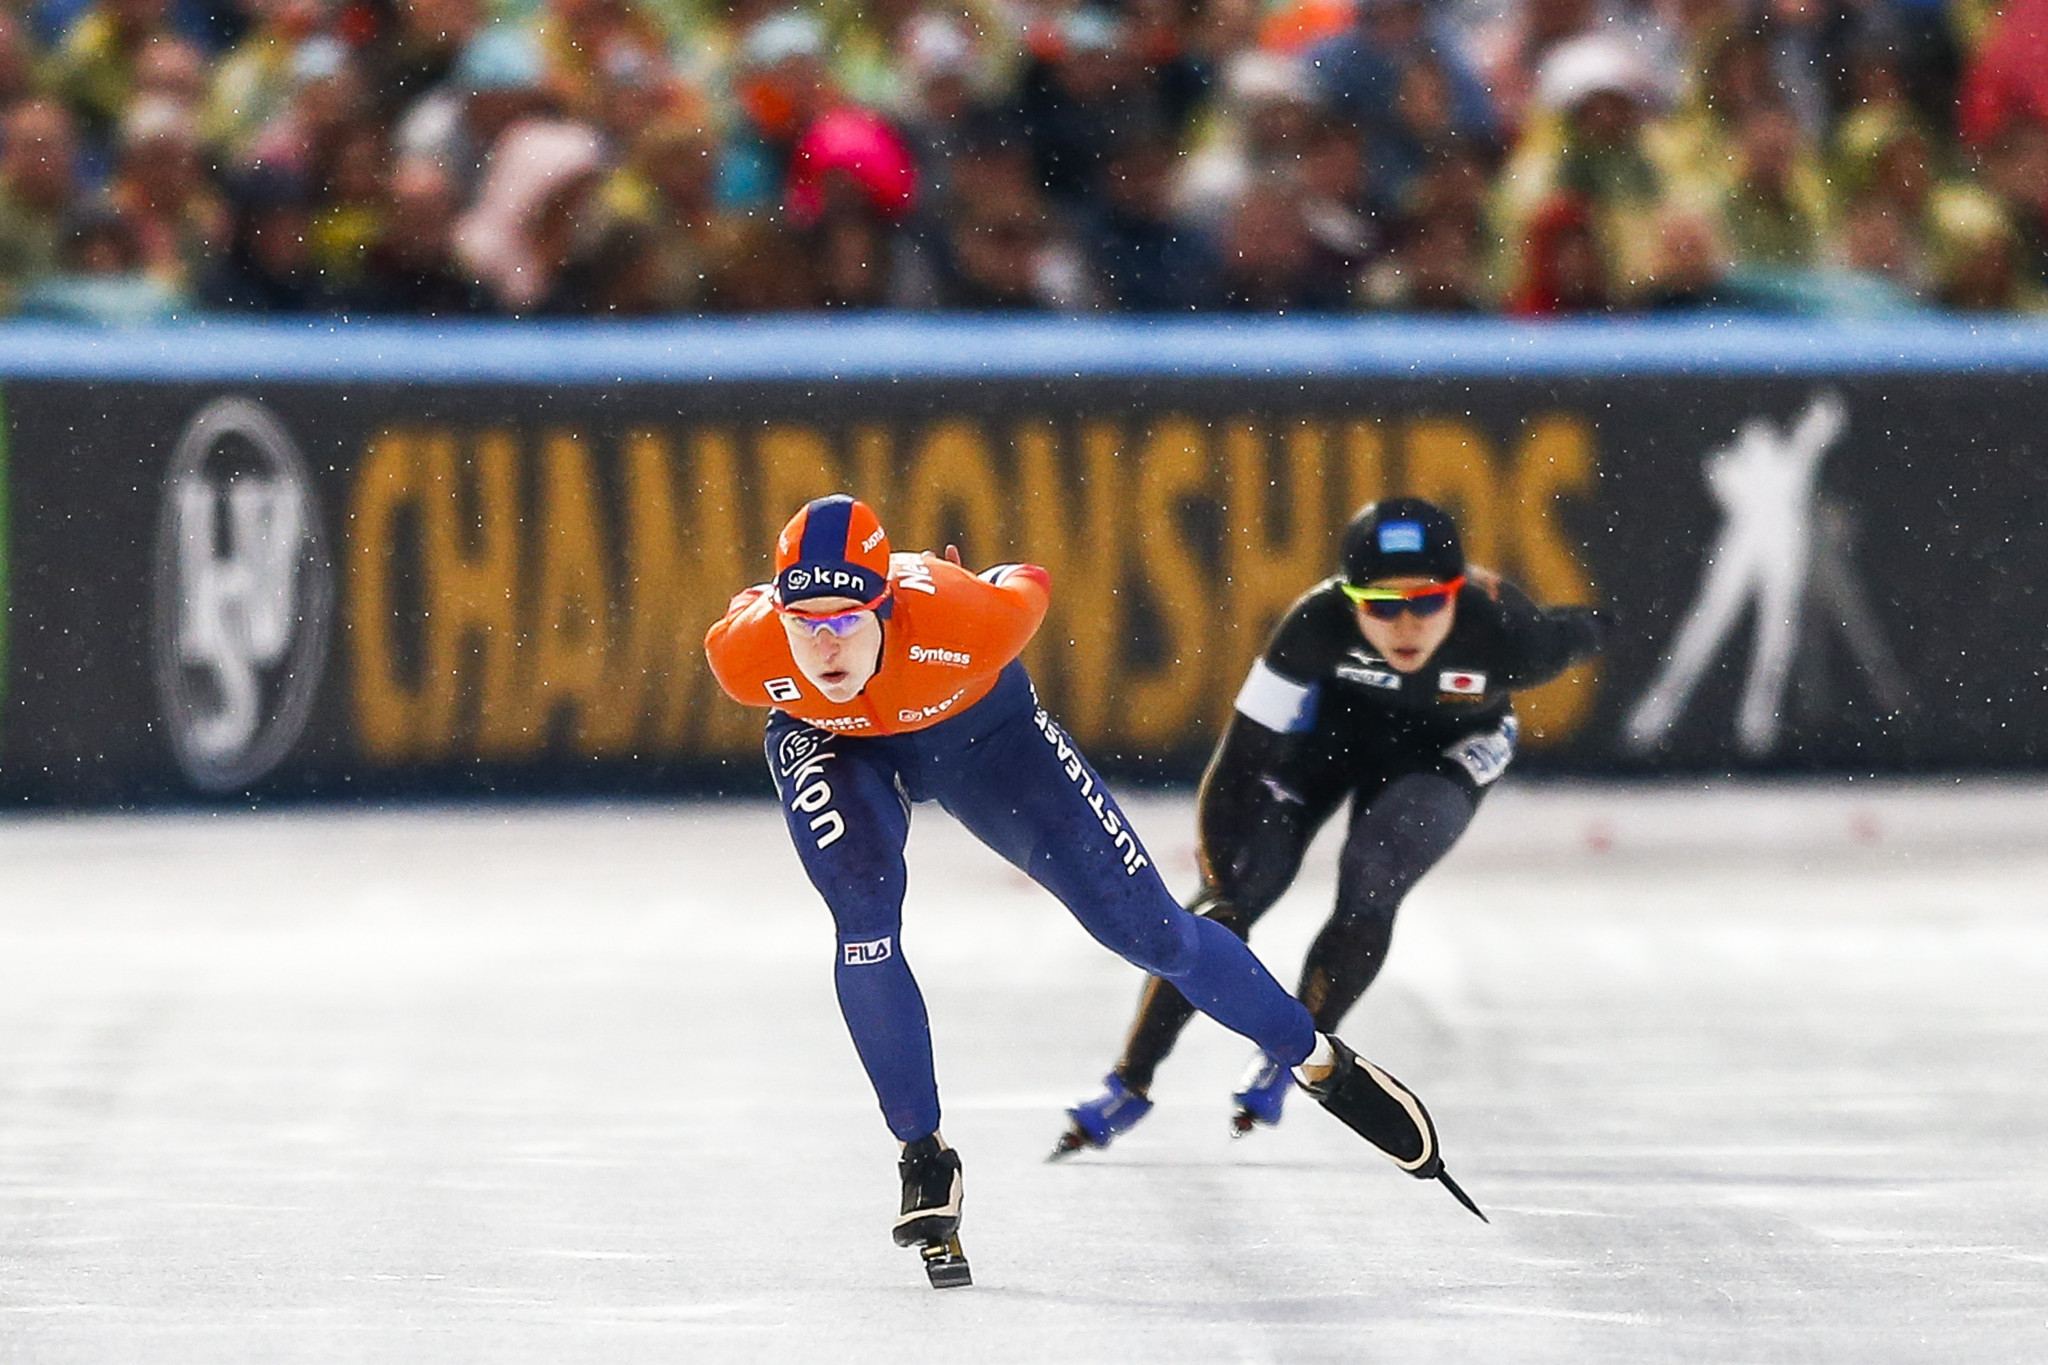 Ireen Wüst won the women's 1,500m Division A race on home ice ©Getty Images